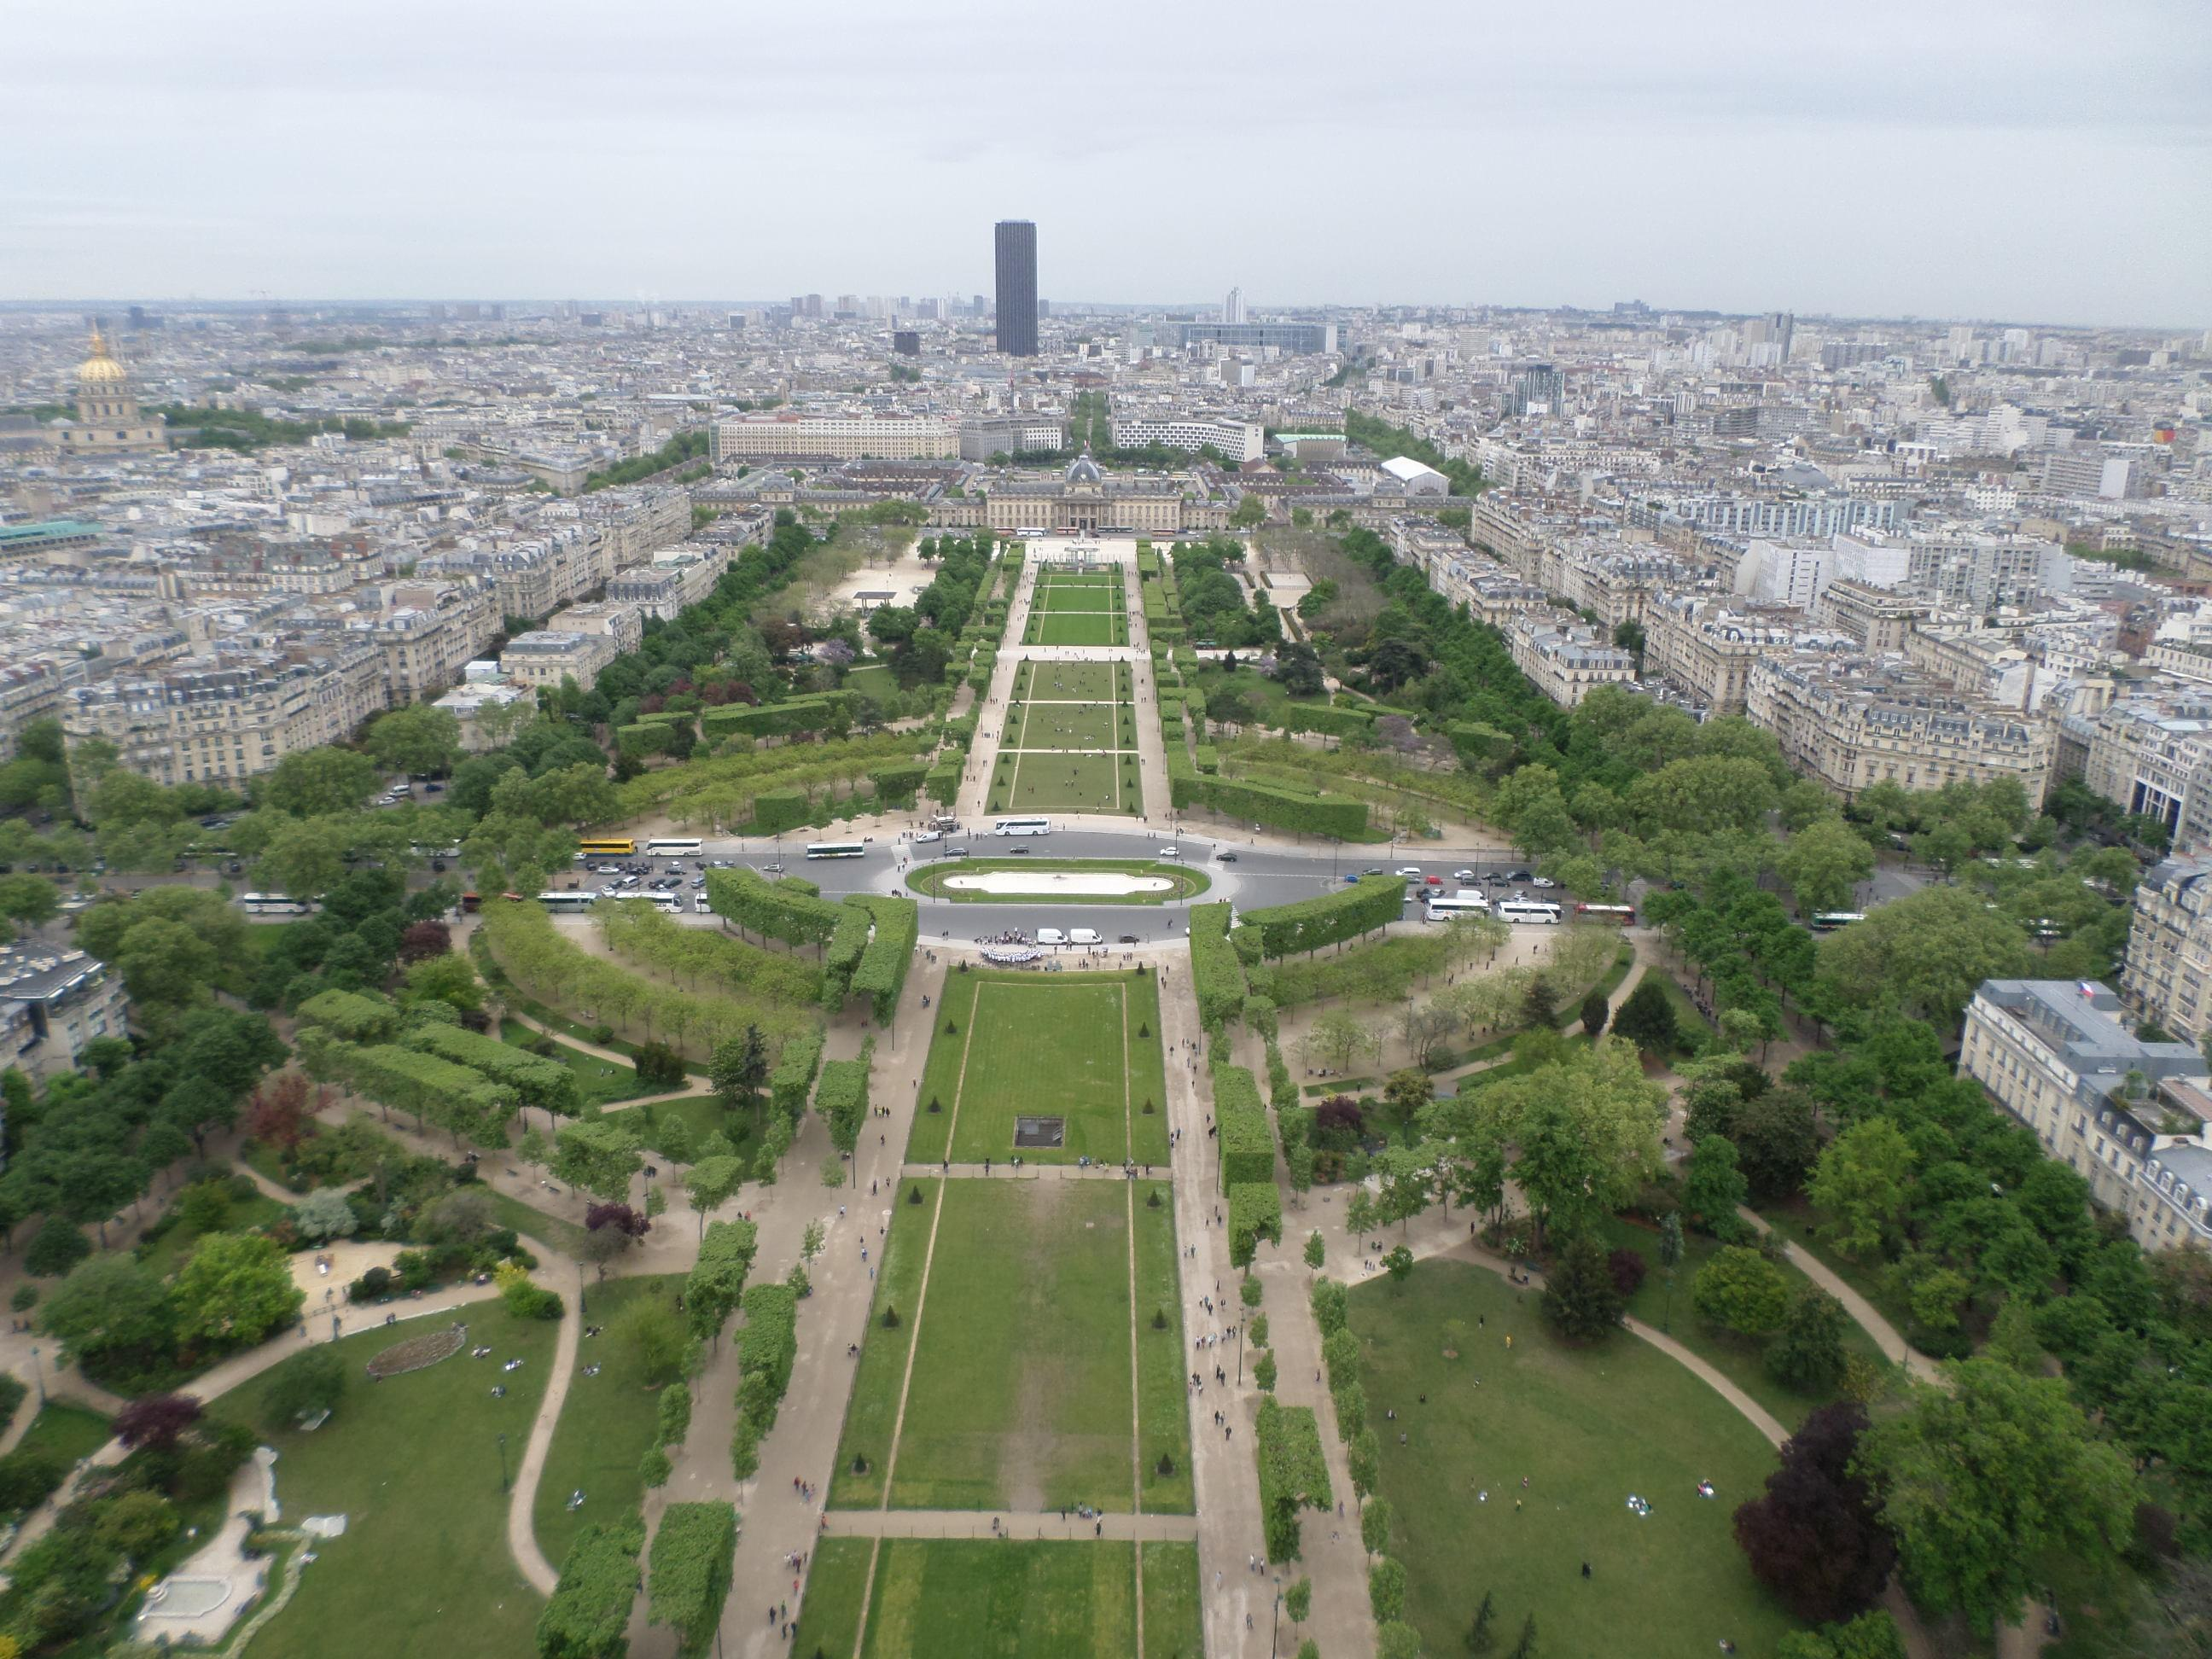 OpenNote: Eiffel Tower. Looking from the tower to the Champ de Mars.